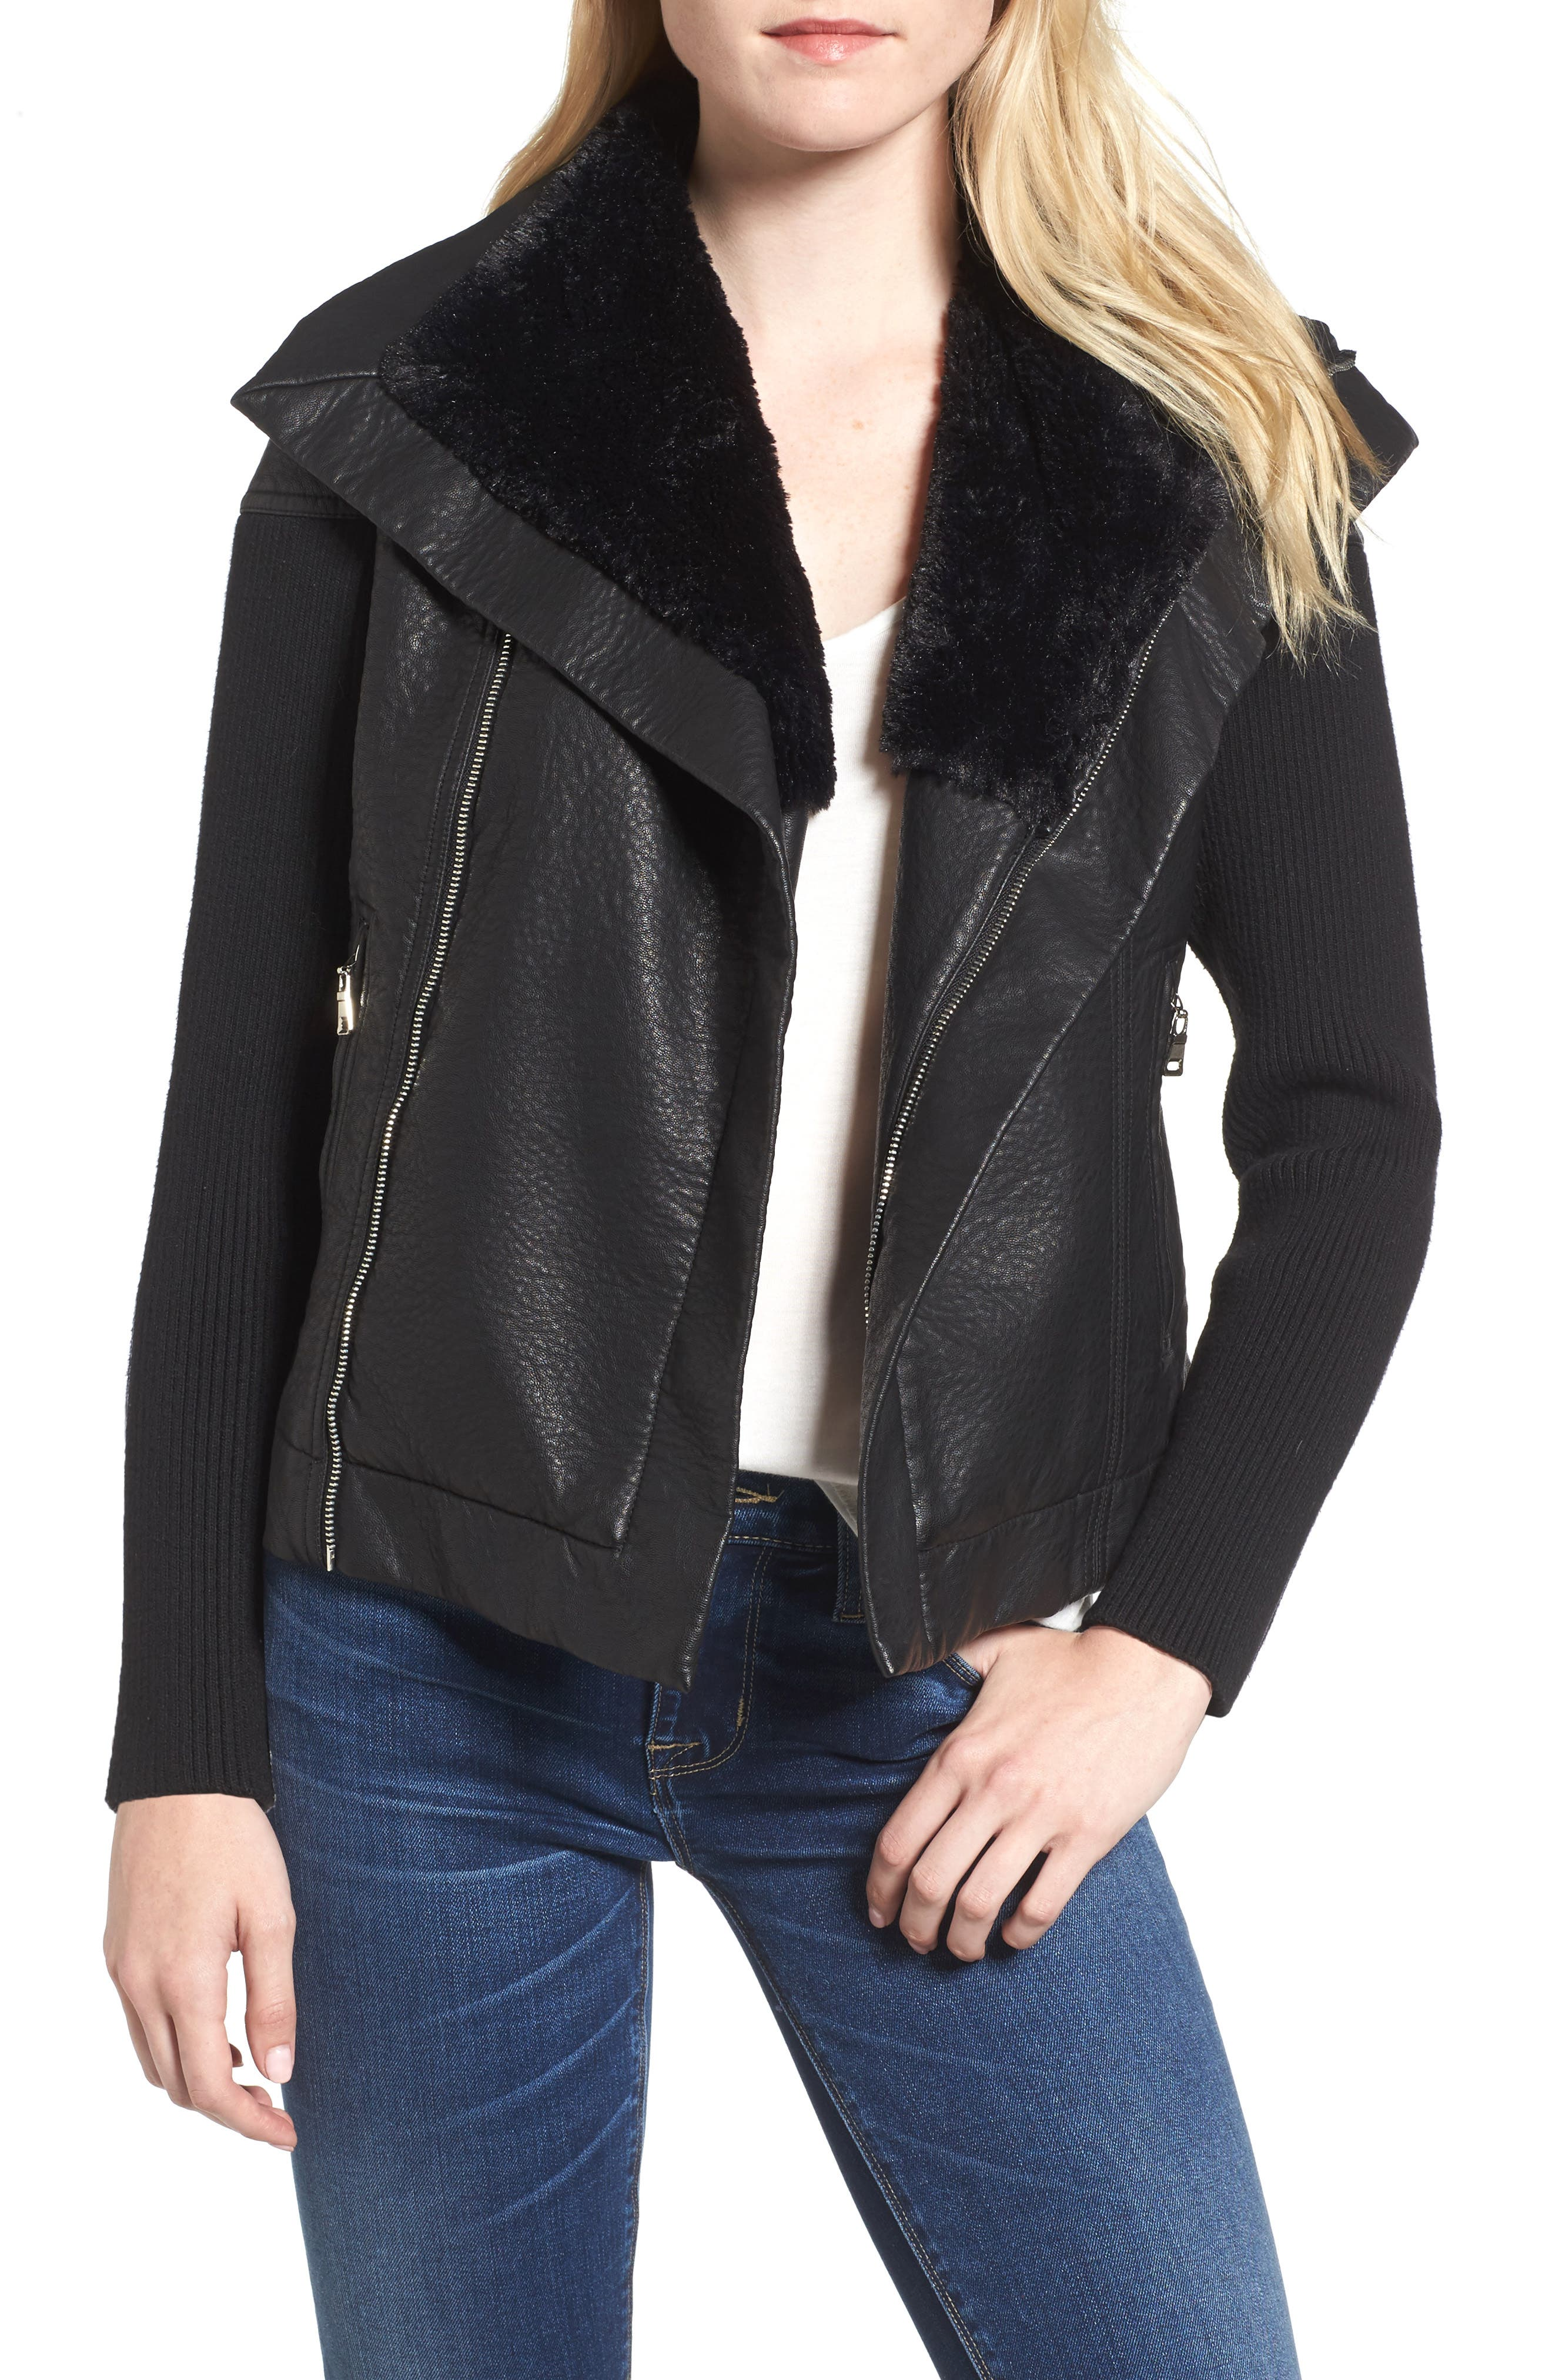 Main Image - Love Token Faux Leather Jacket with Faux Fur Trim